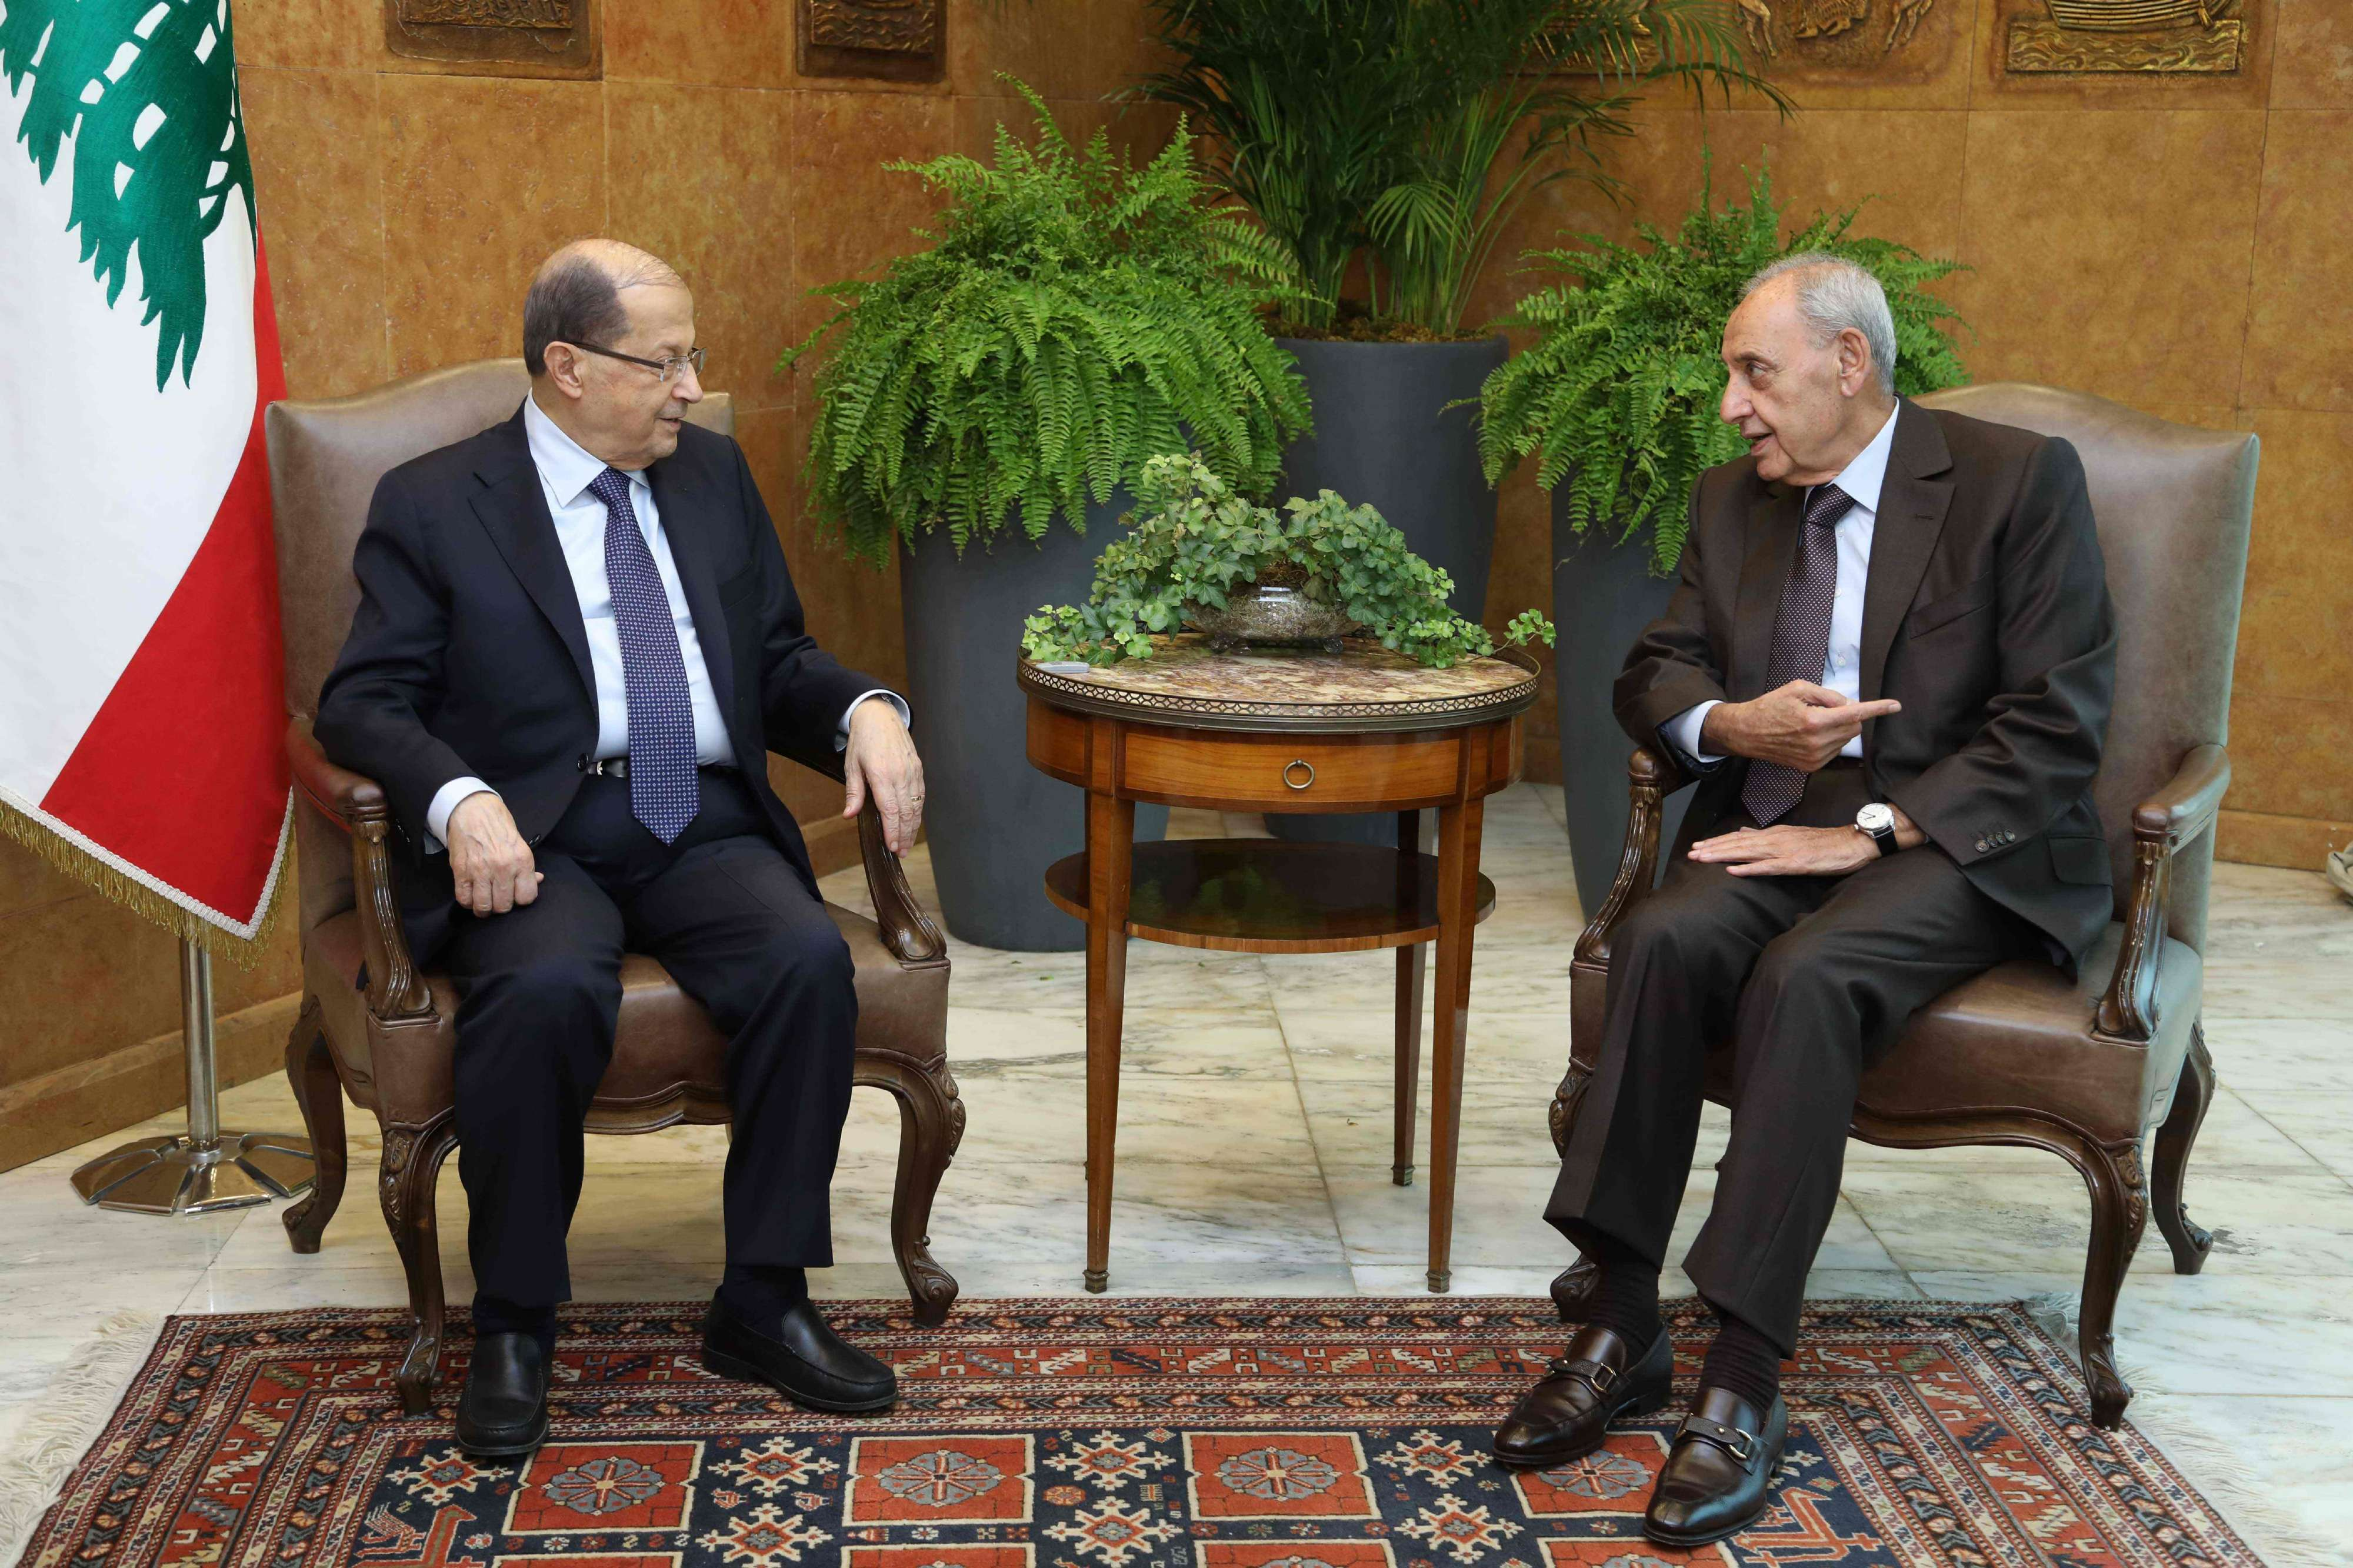 Lebanese President Michel Aoun (L) meeting with Parliament Speaker Nabih Berri at the presidential palace in Baadba, on November 27. (AFP/ DALATI AND NOHRA)